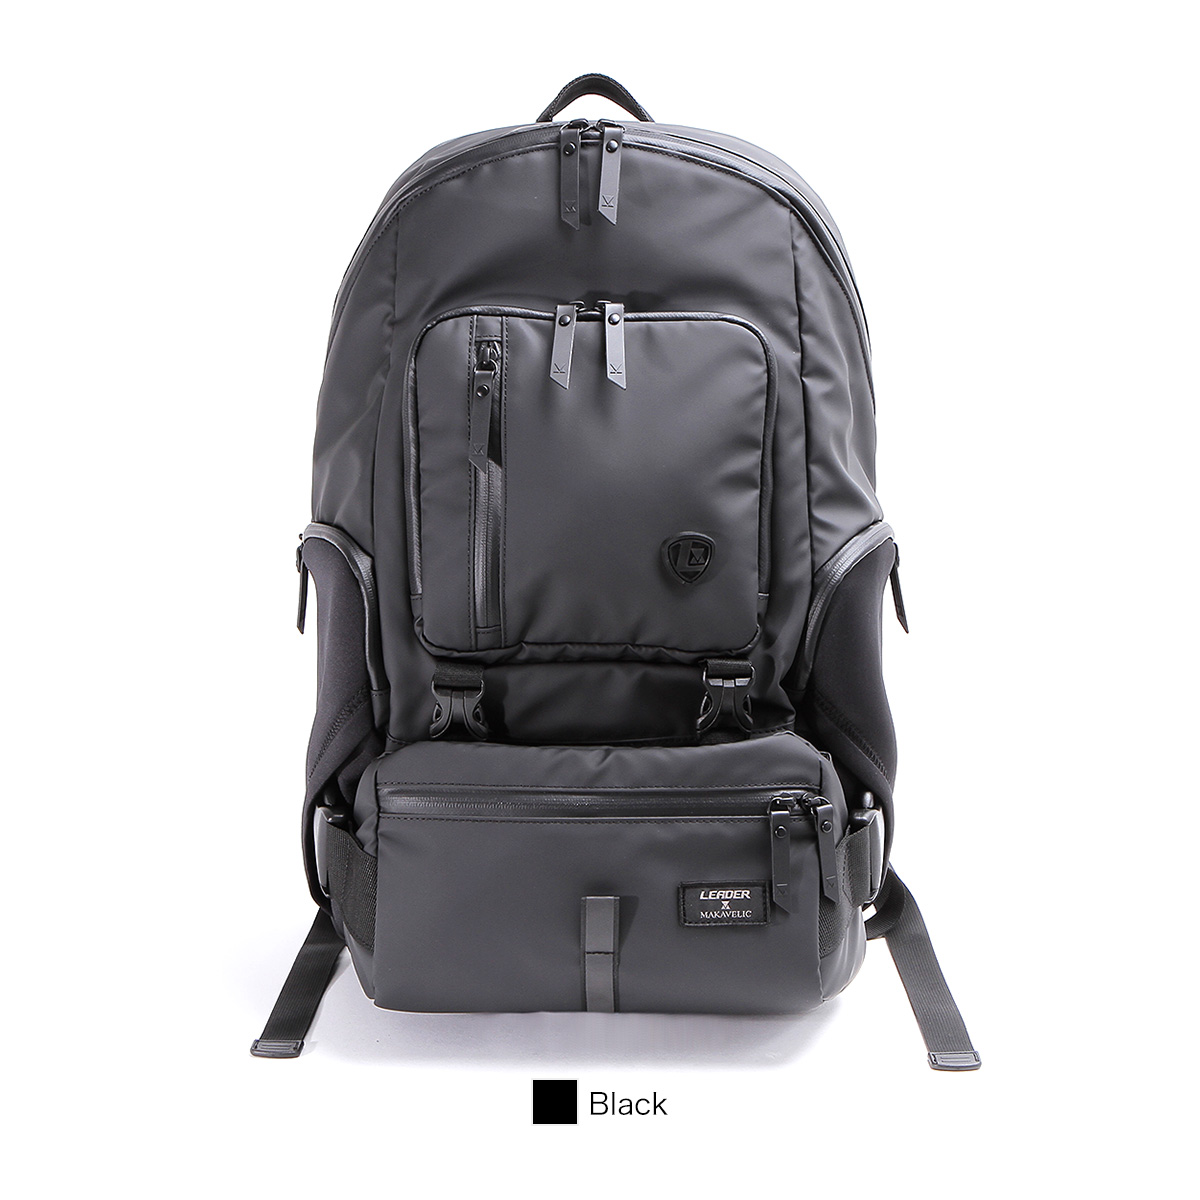 ac0080e84b4e マキャベリックユニオンバックパックリュック FEARLESS UNION BACKPACK MAKAVELIC 3107-10,126 ...